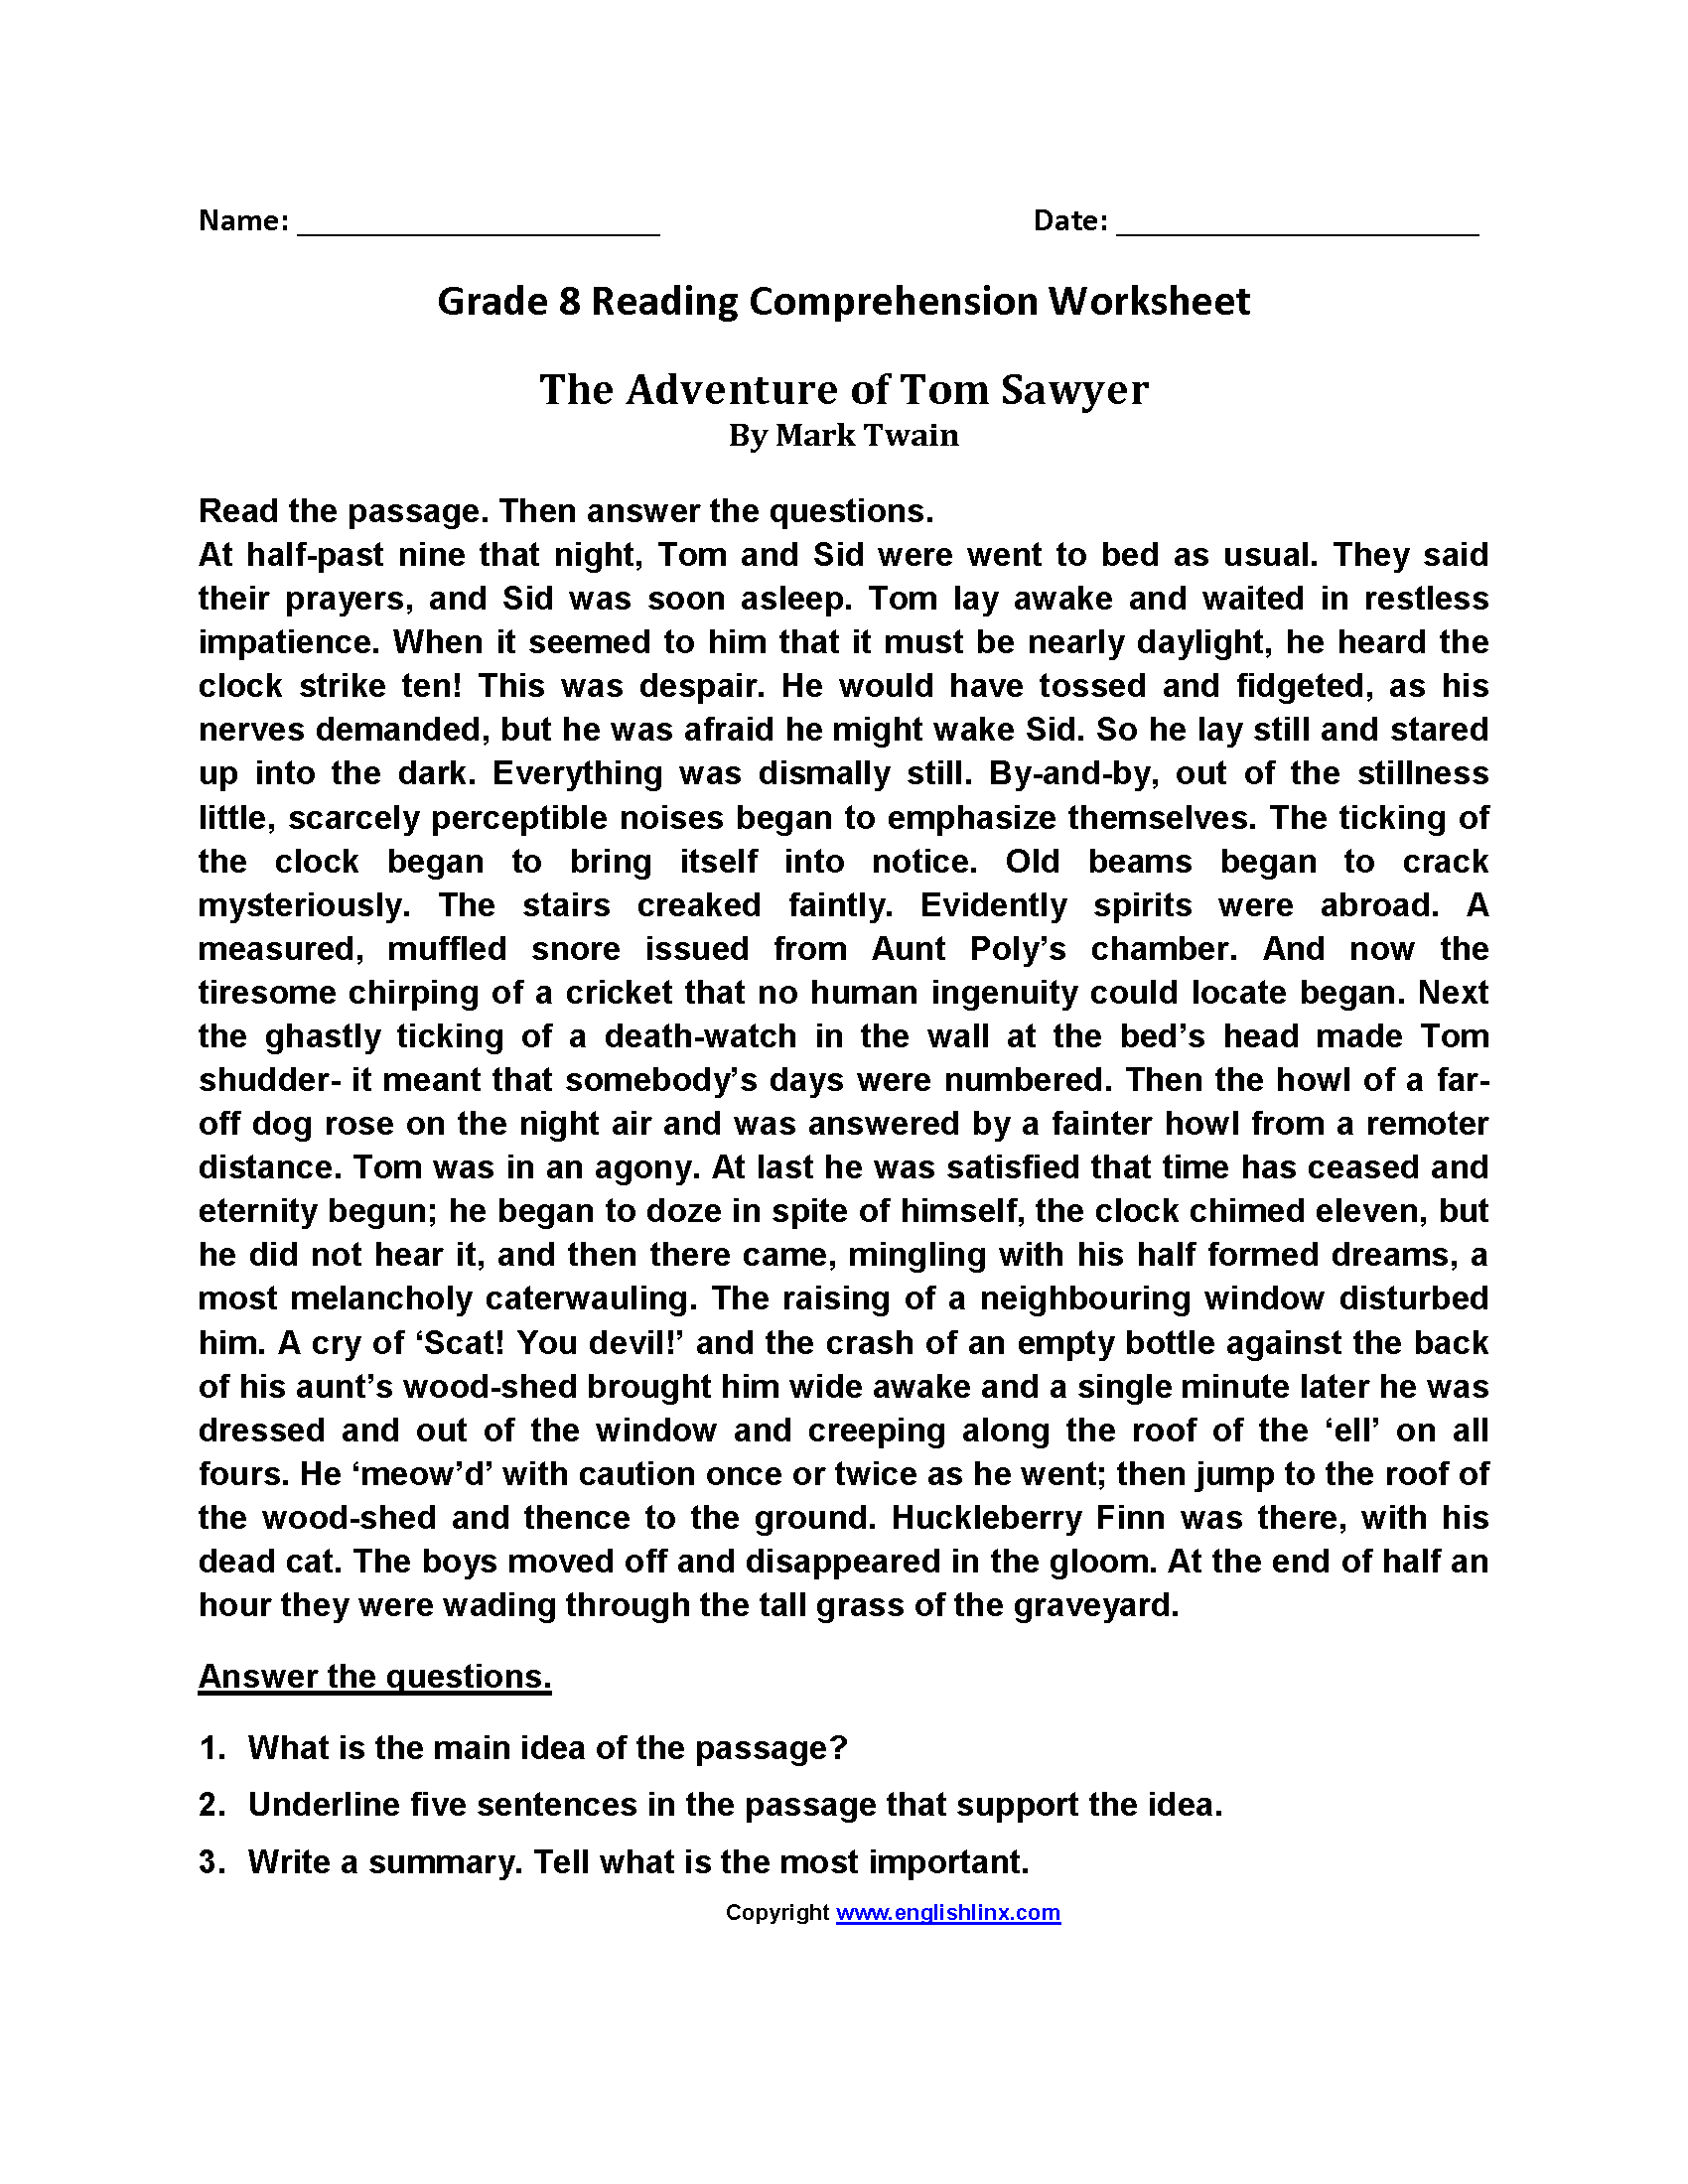 Worksheets Reading Comprehension Worksheets Grade 8 reading worksheets eighth grade worksheets